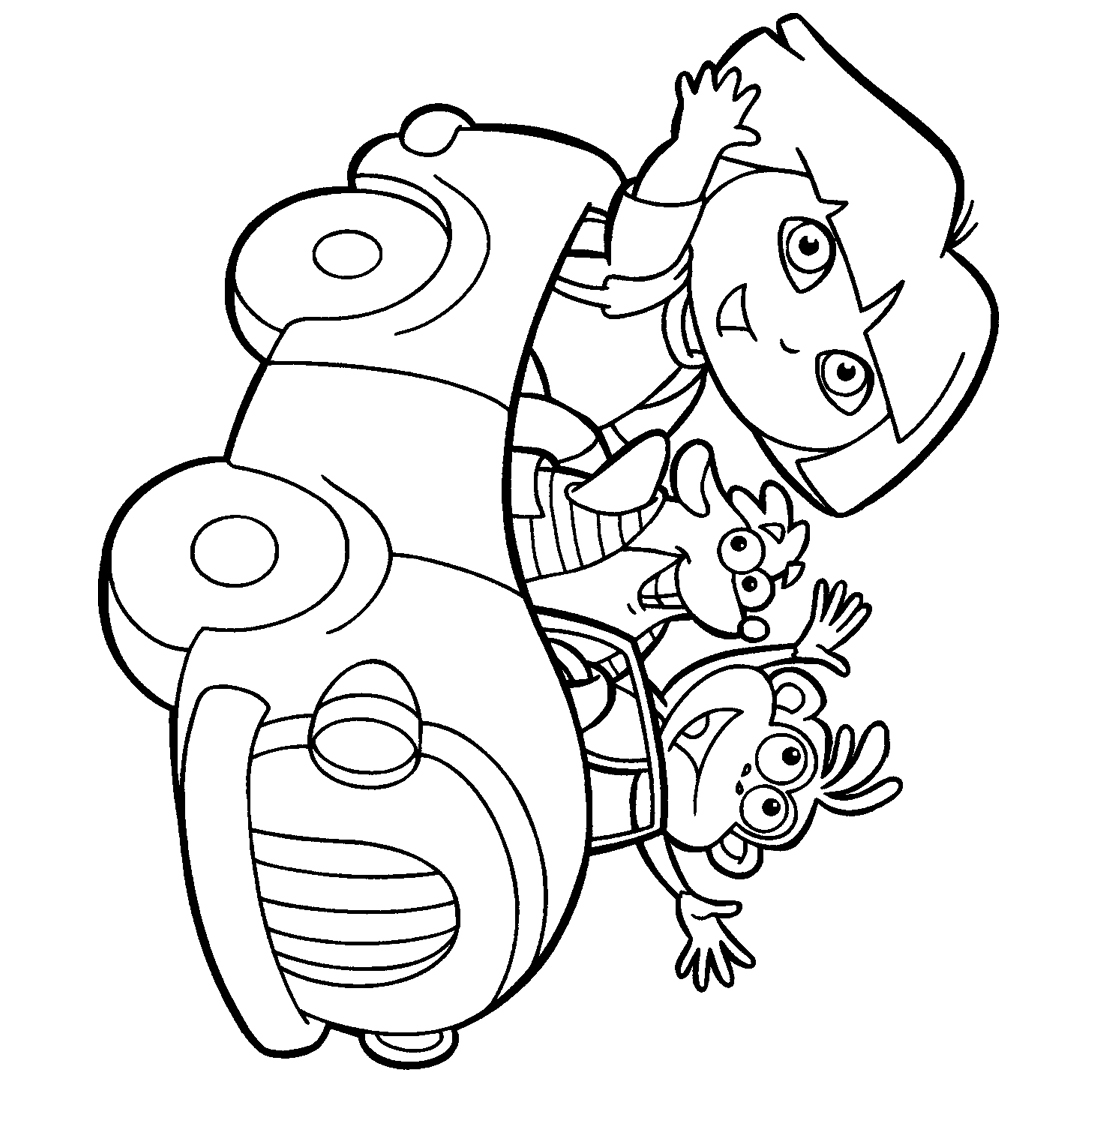 childs play coloring pages - photo #23